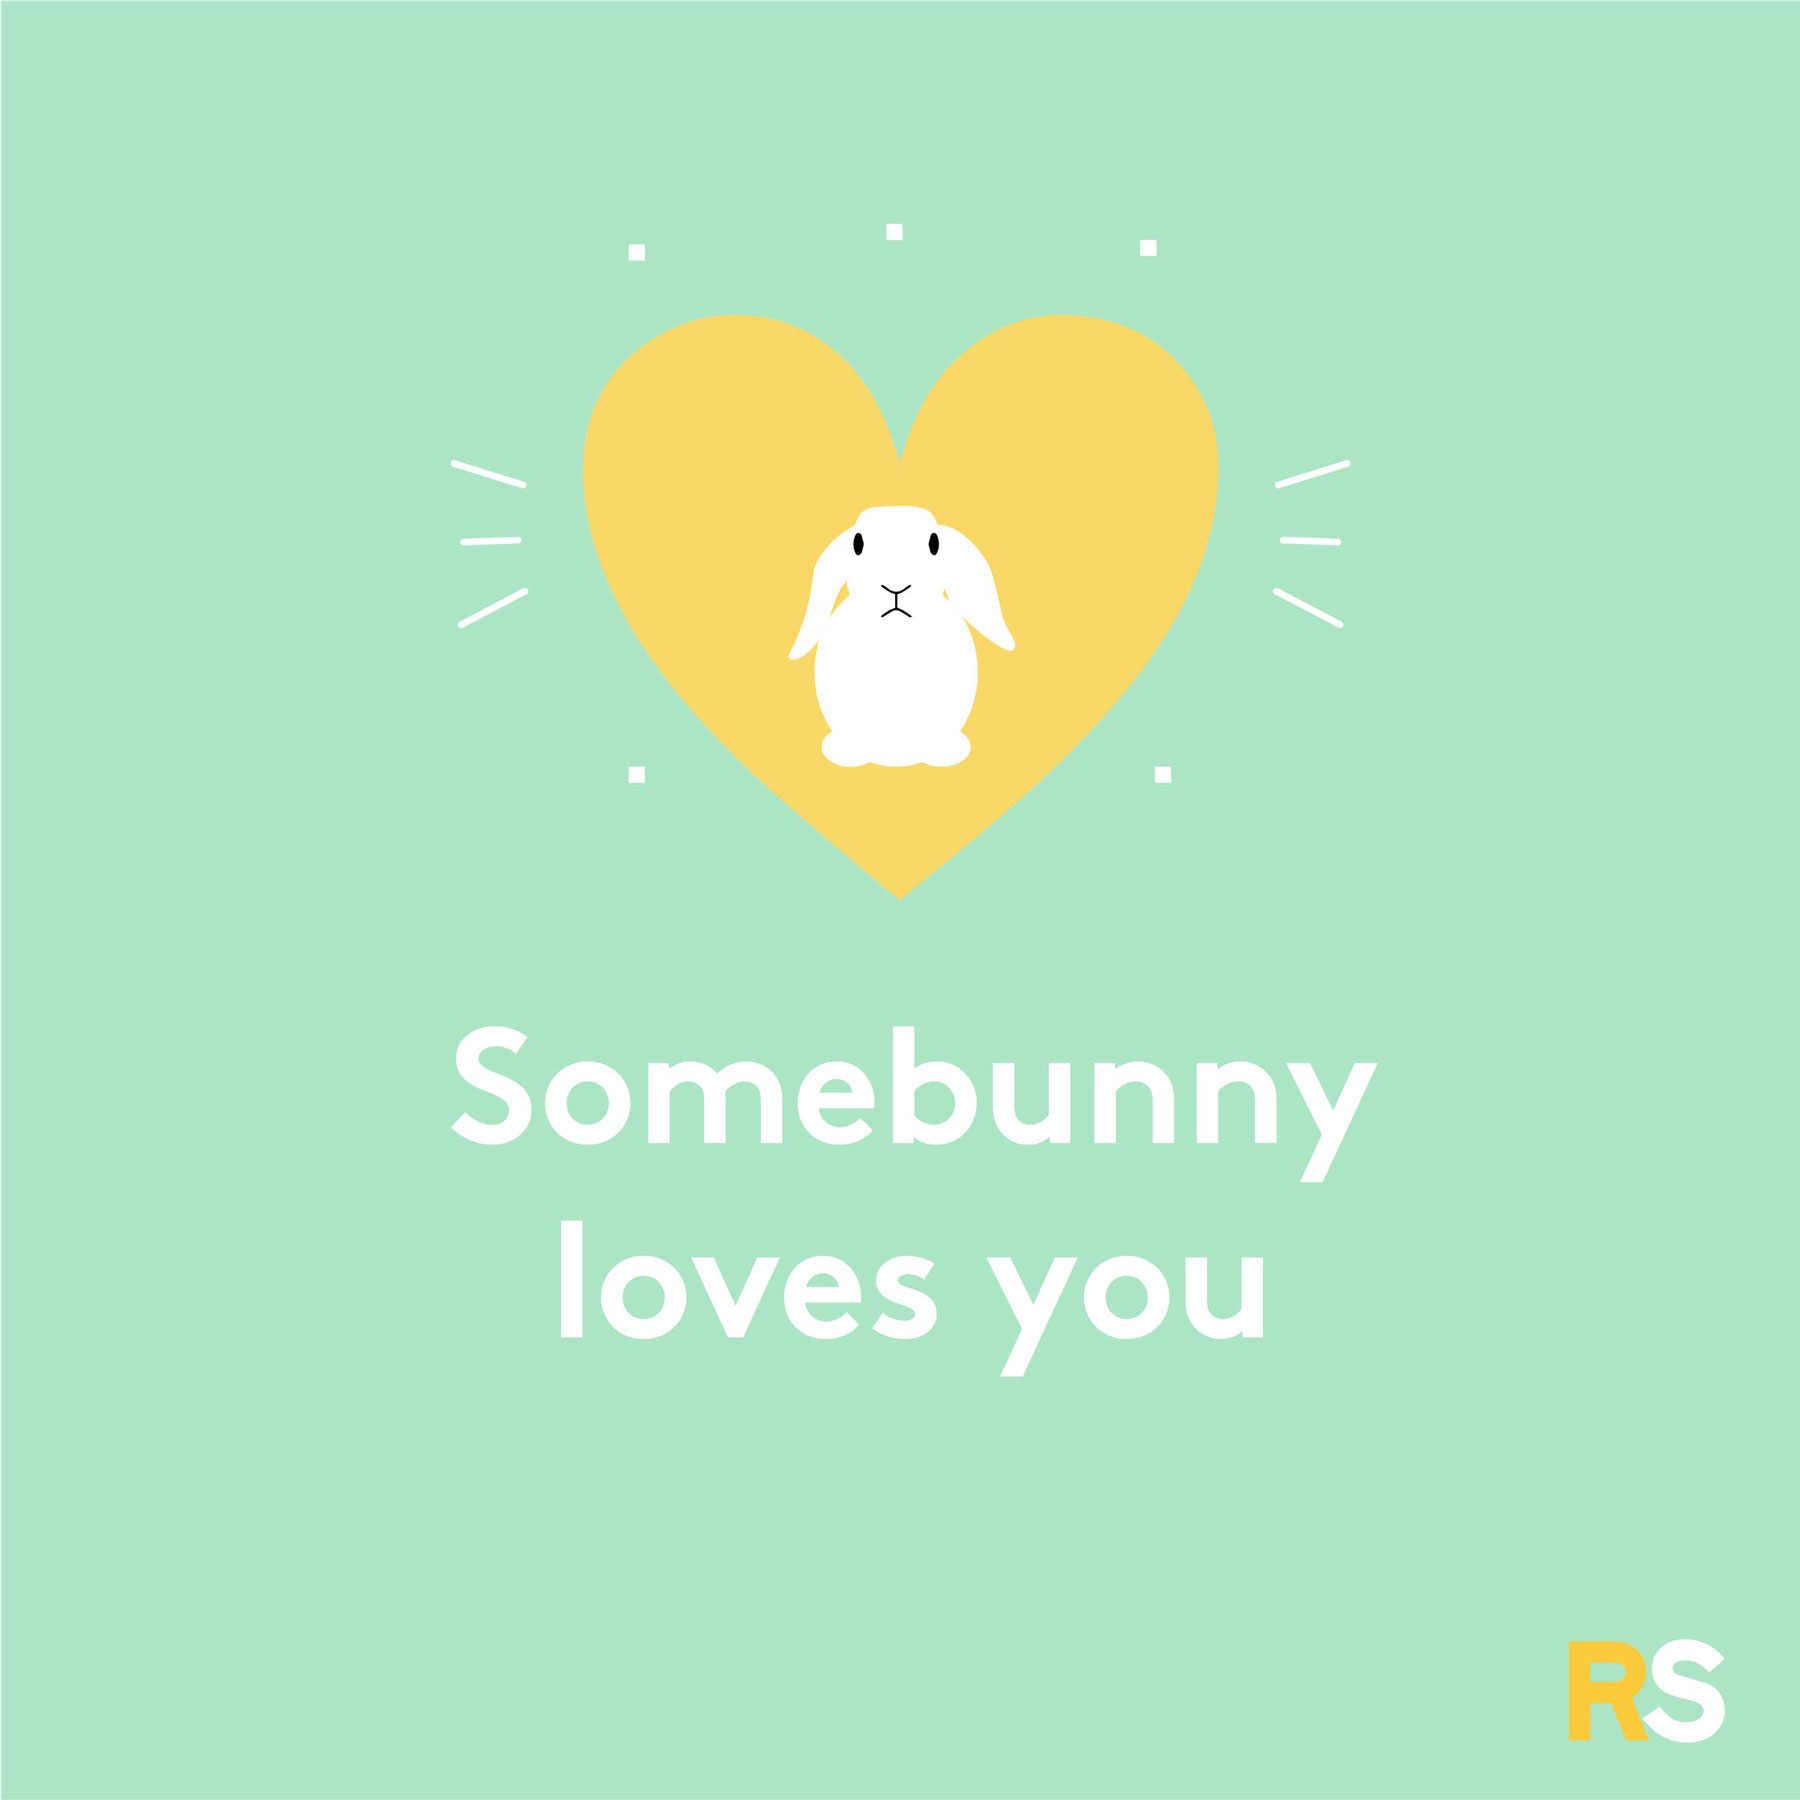 Easter quotes, captions, and messages - Somebunny loves you